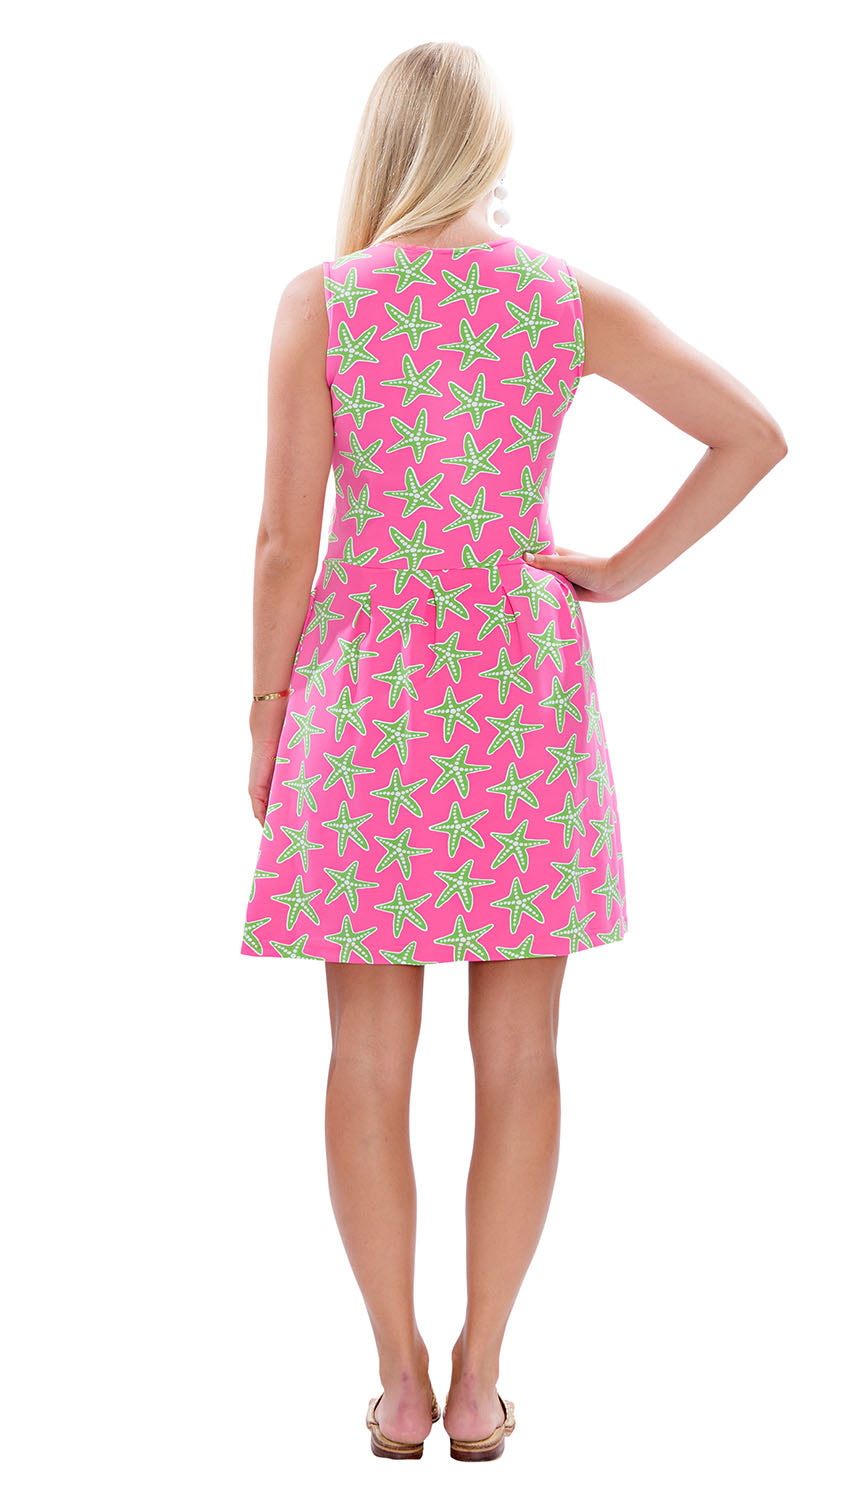 Boardwalk Dress - Sea Stars Pink/Green